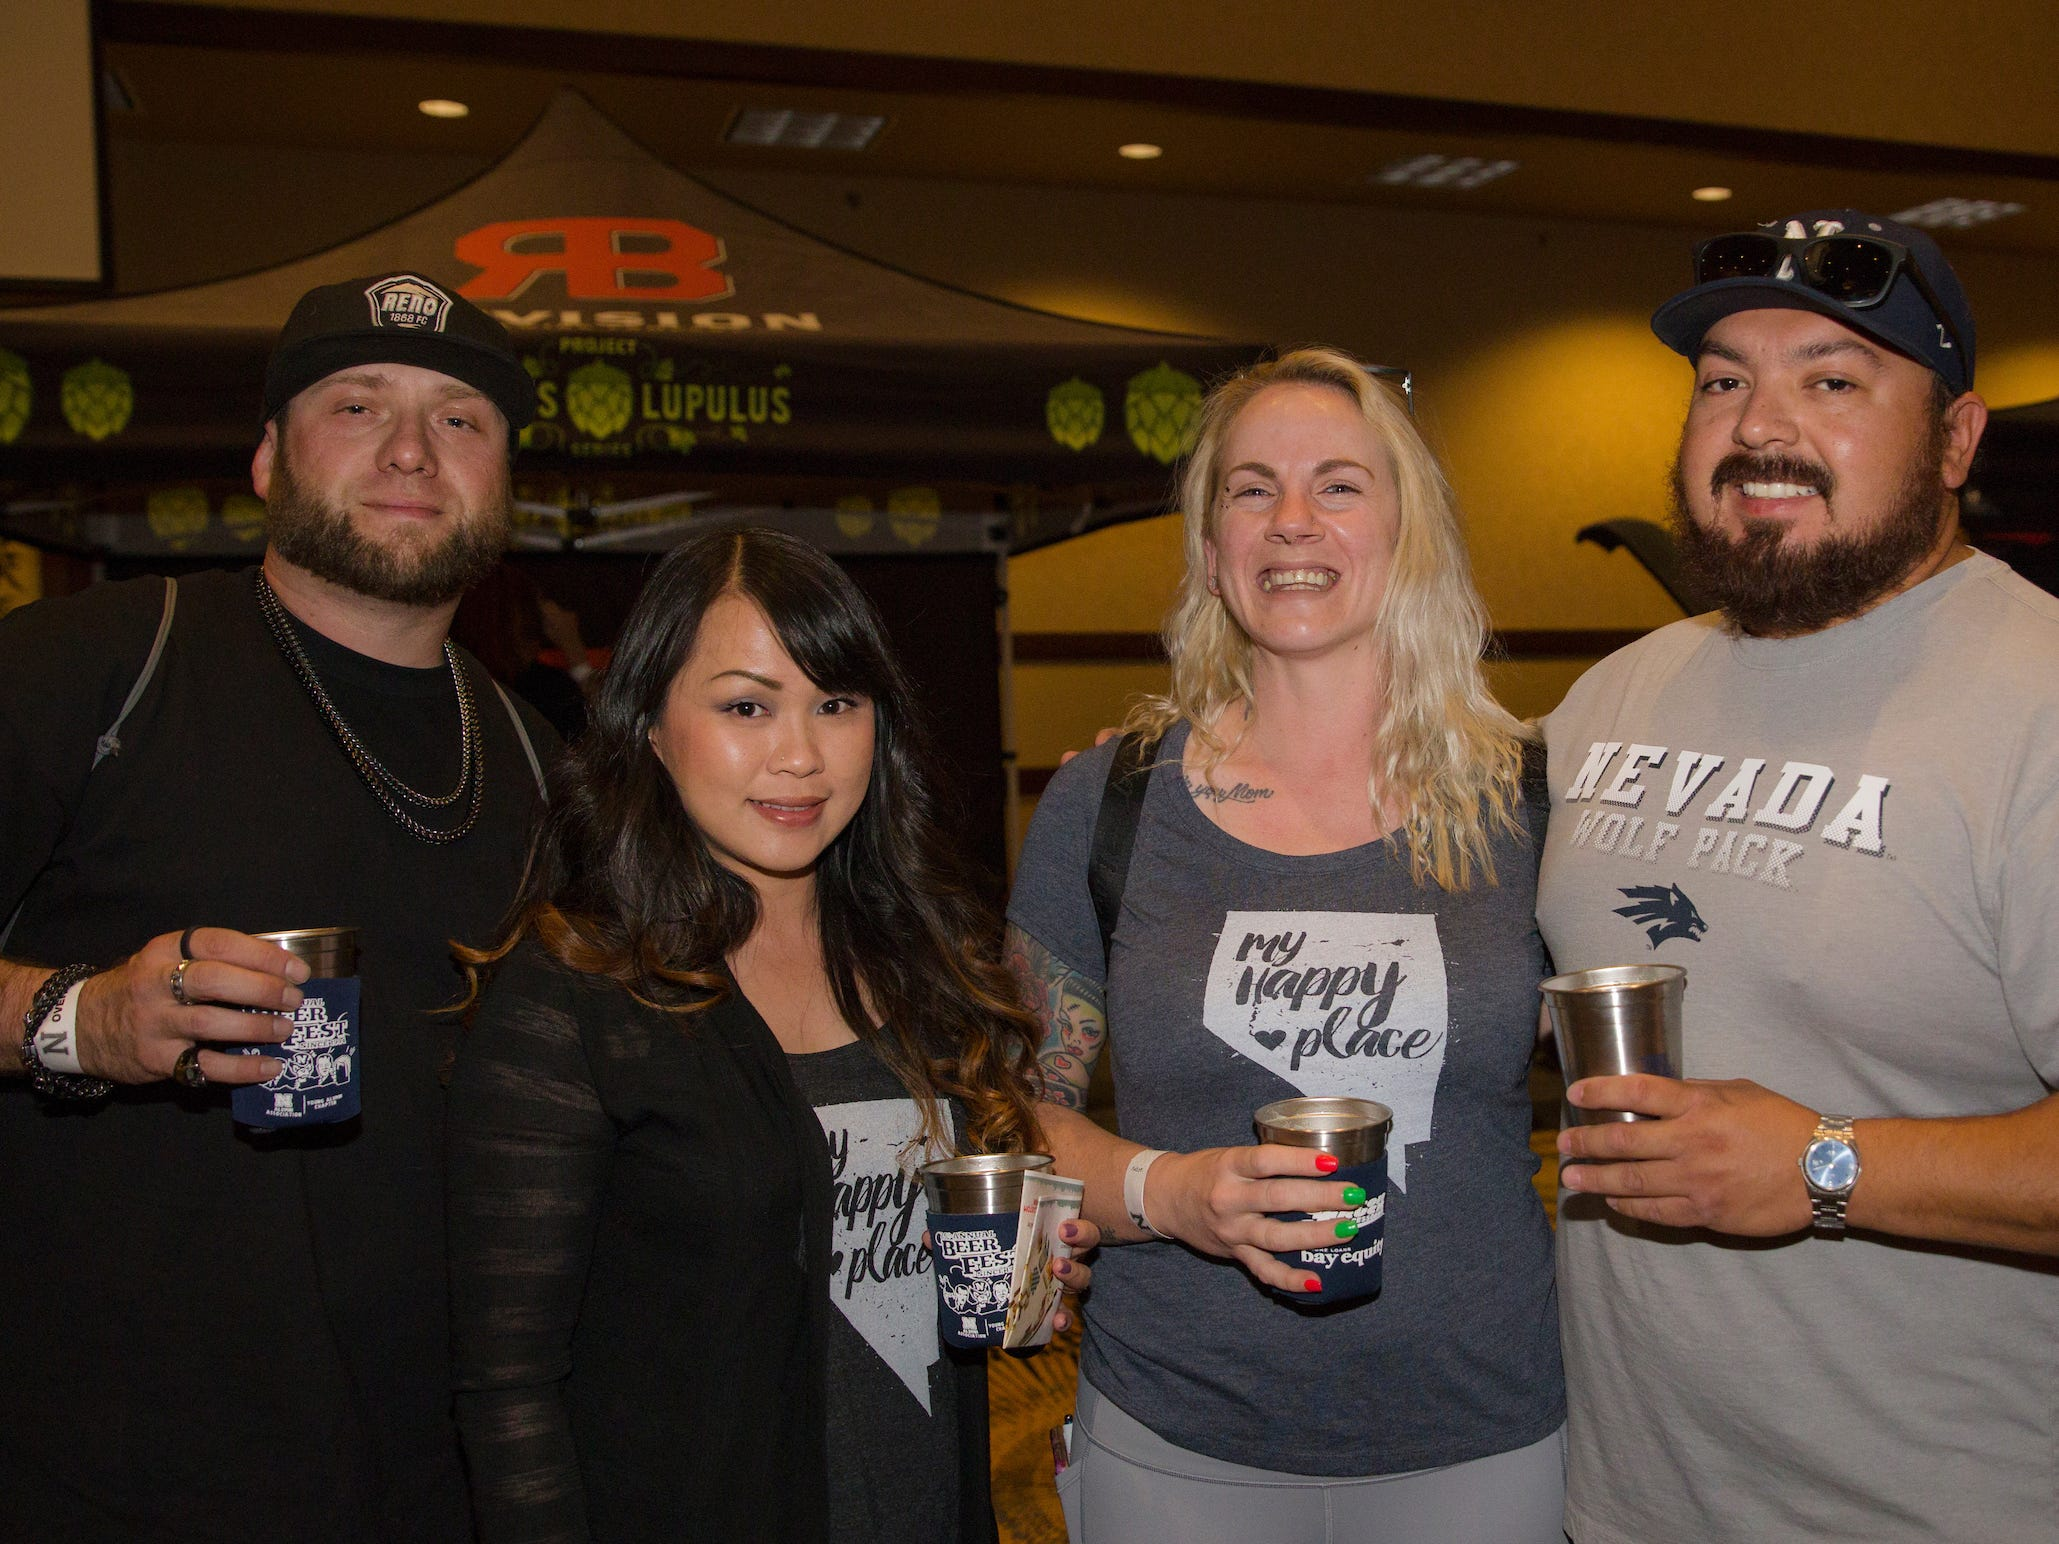 Chris, Krissy, Sara and Maury during the Young Alumni Beer Fest in the Reno Ballroom in downtown Reno on Friday, May 3, 2019.